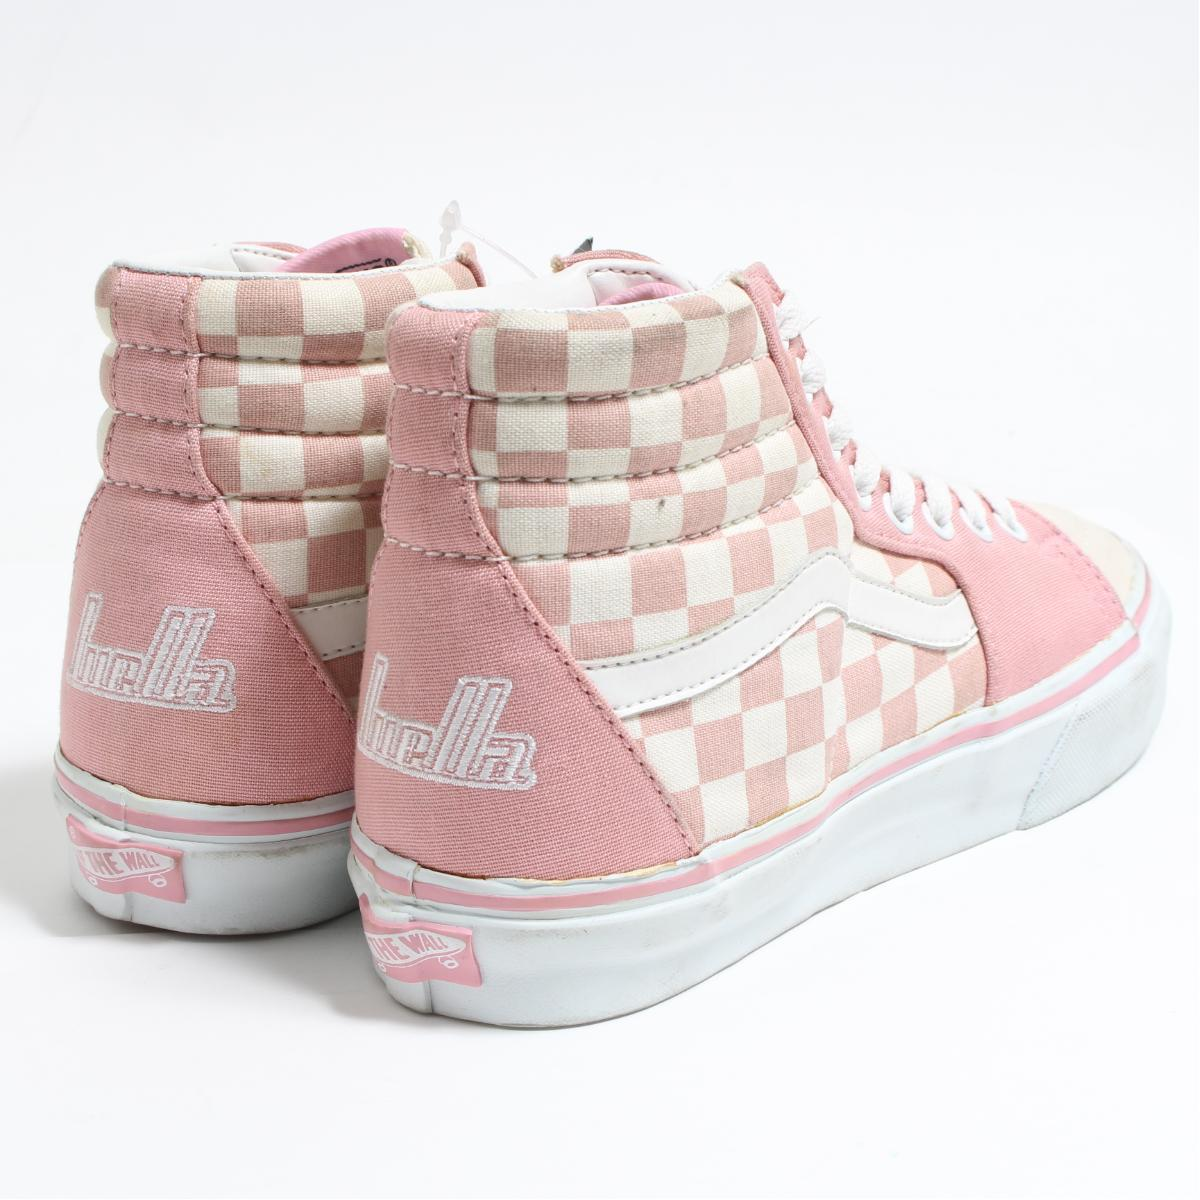 ccf8874c00 Vans VANS SK8-HI high-top checker flag sneakers WS7 Lady s 24.0cm  boo3293  with the tag